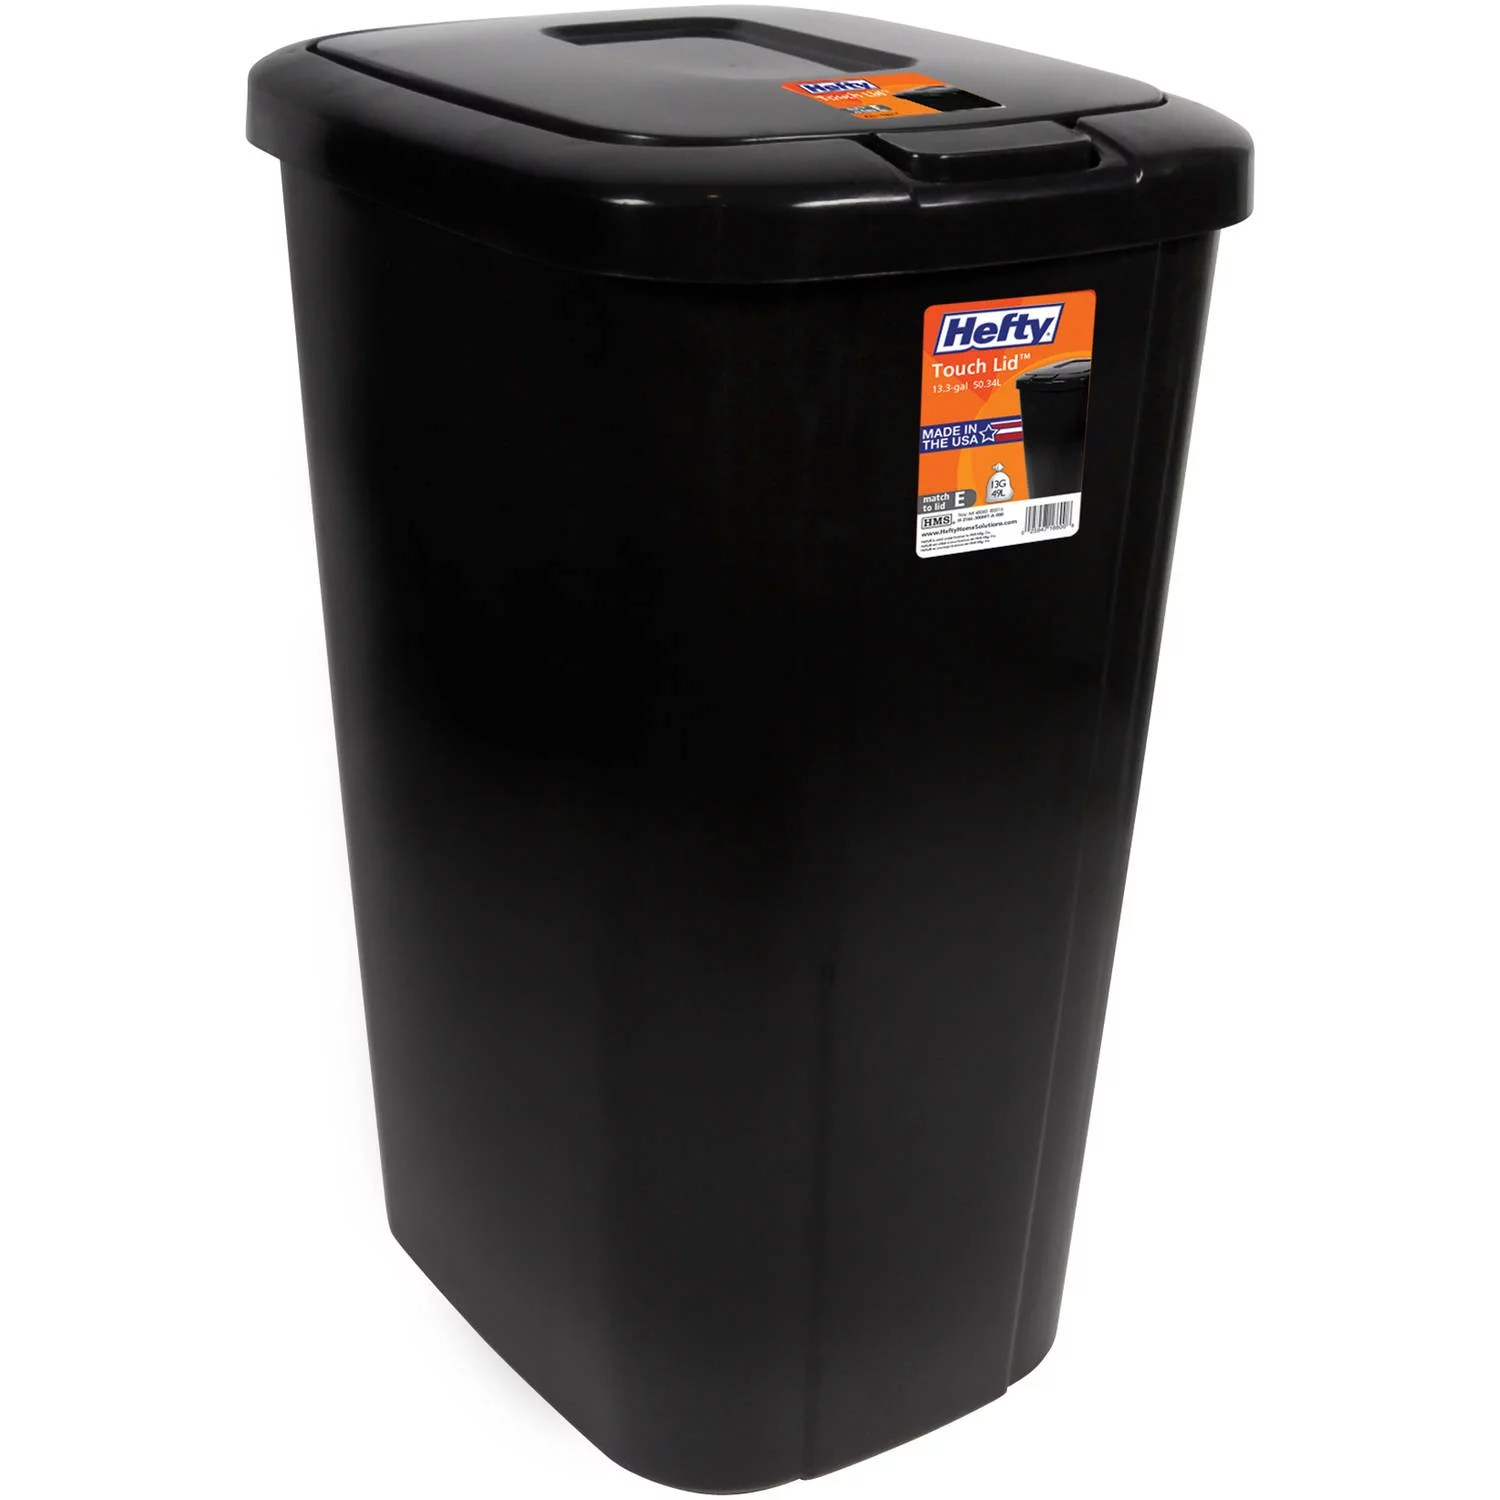 Garbage Bins Walmart Rubbermaid Brute 32 Gallon Trash Can With Lid Grey